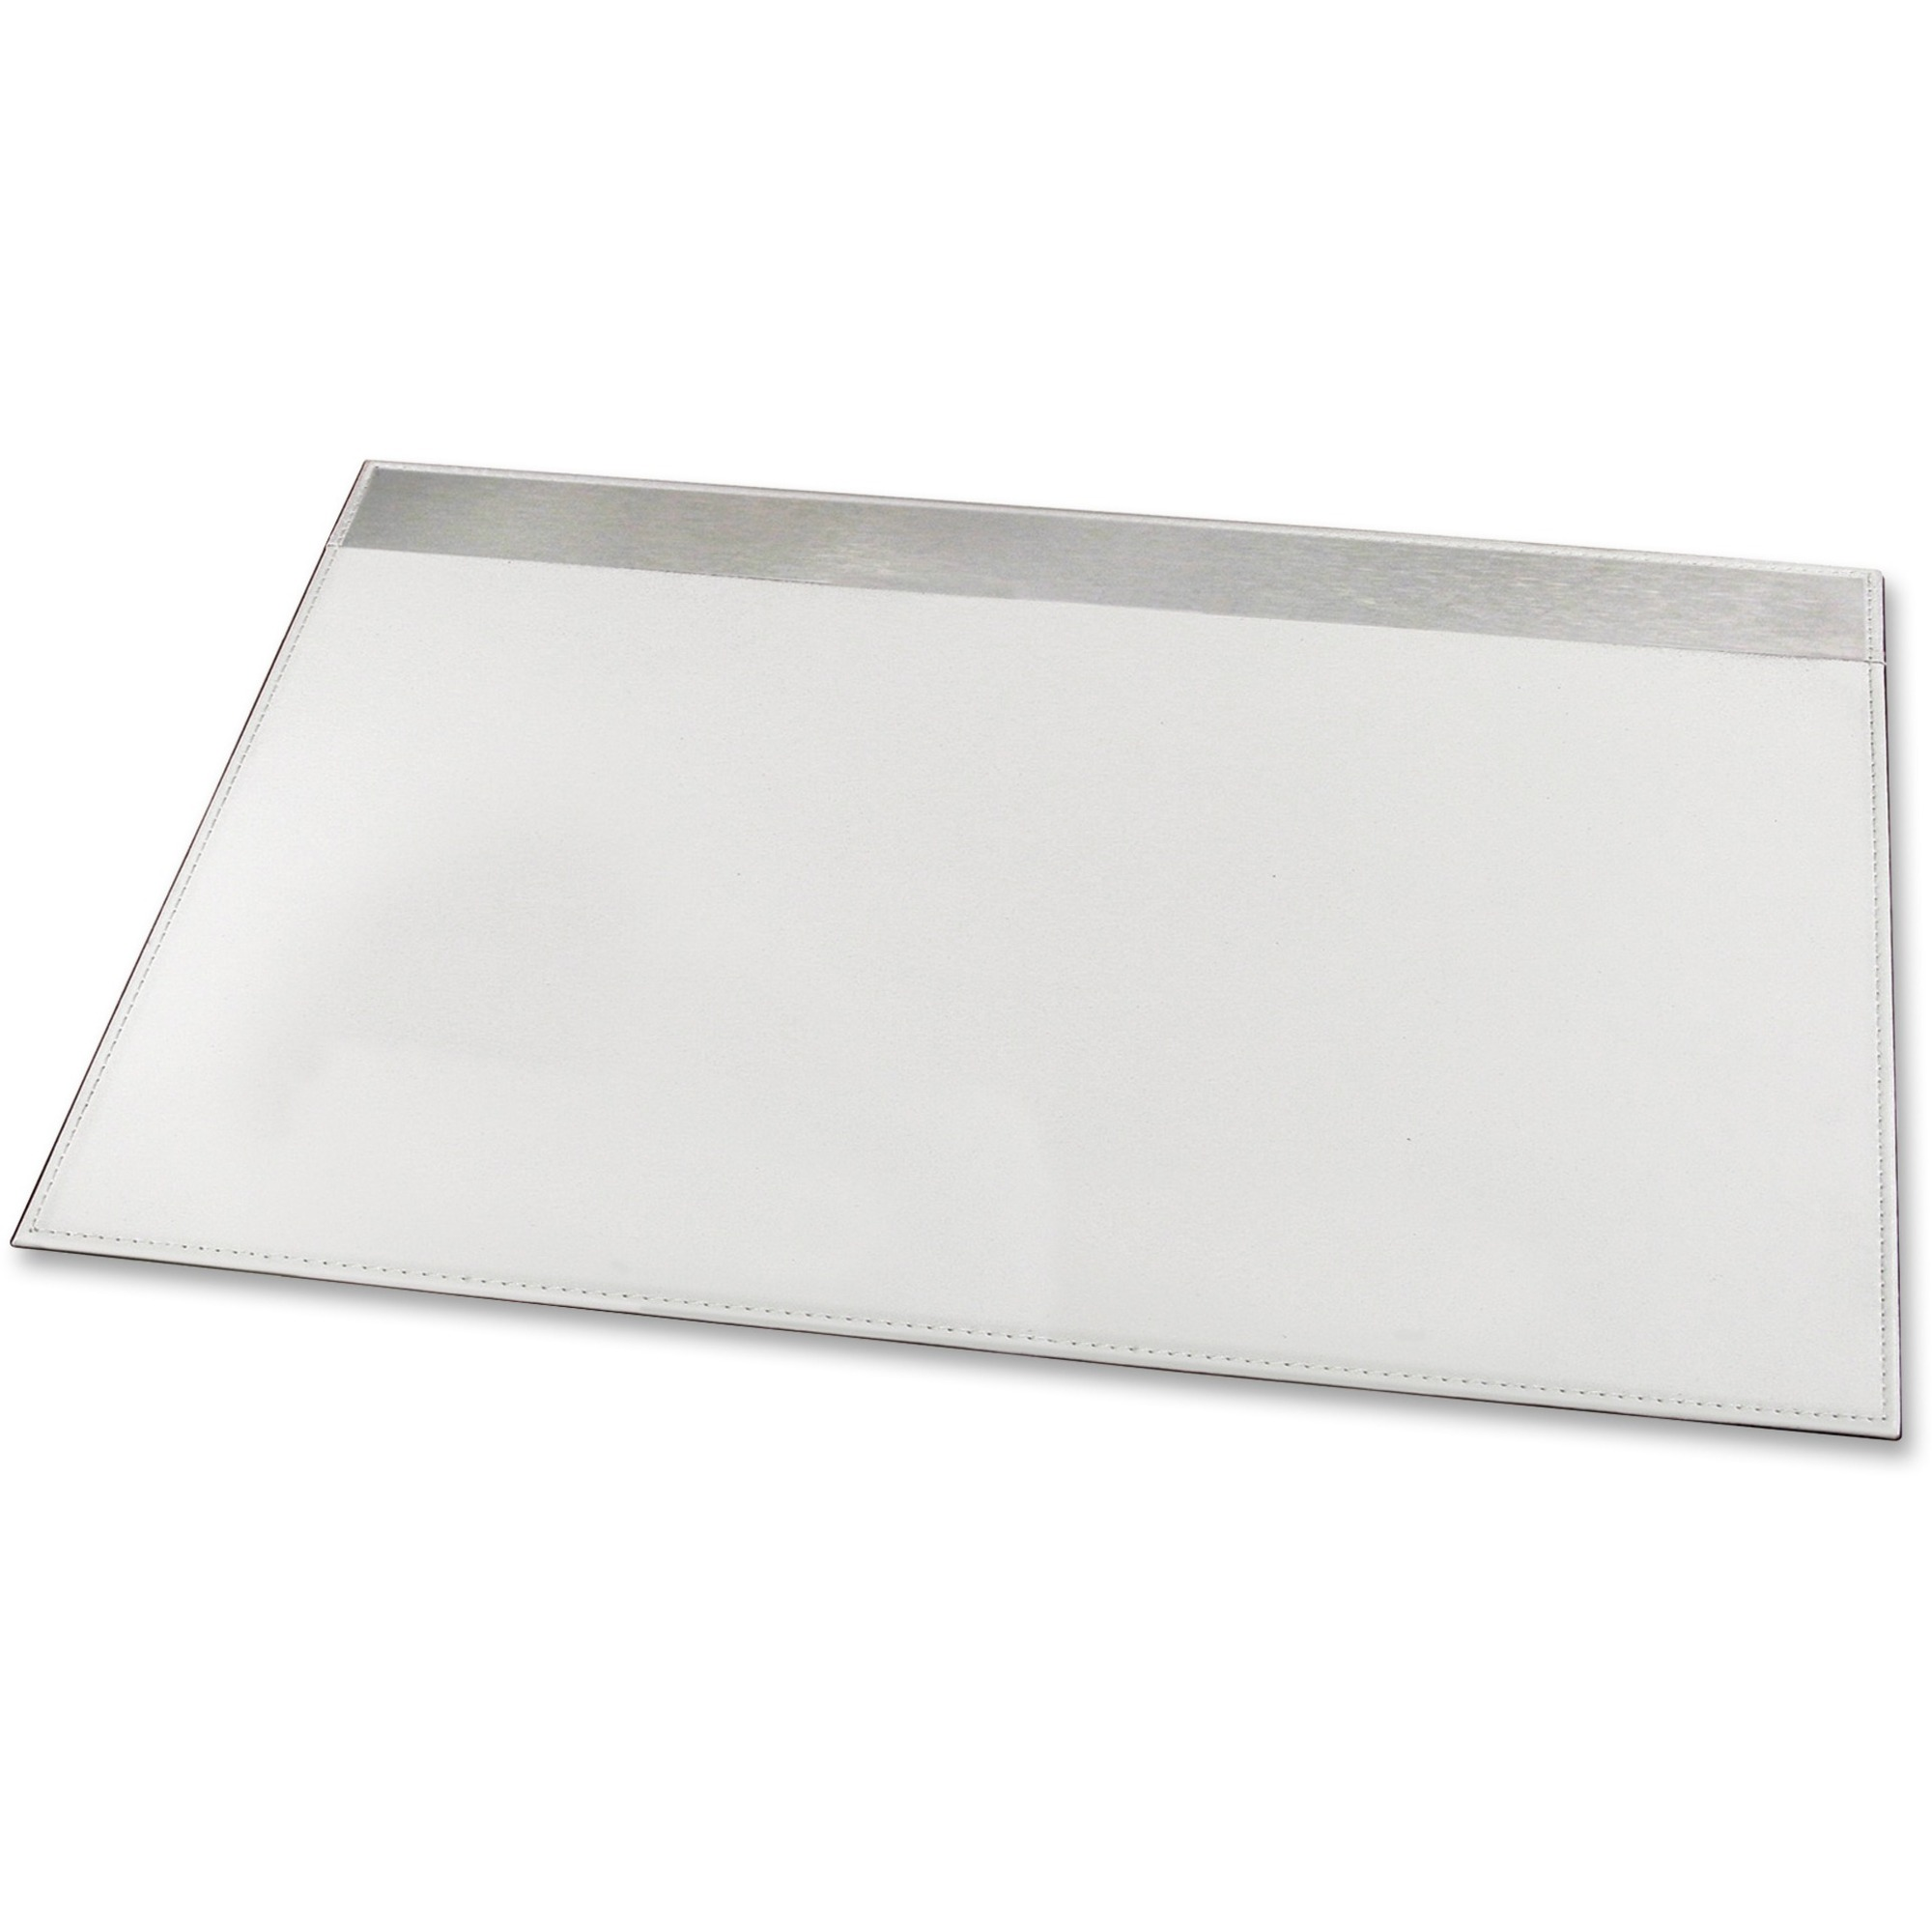 Artistic 19 X 24 Architect Line Desk Pad White Silver Metal Rectangle 482 60 Mm Width 609 Depth